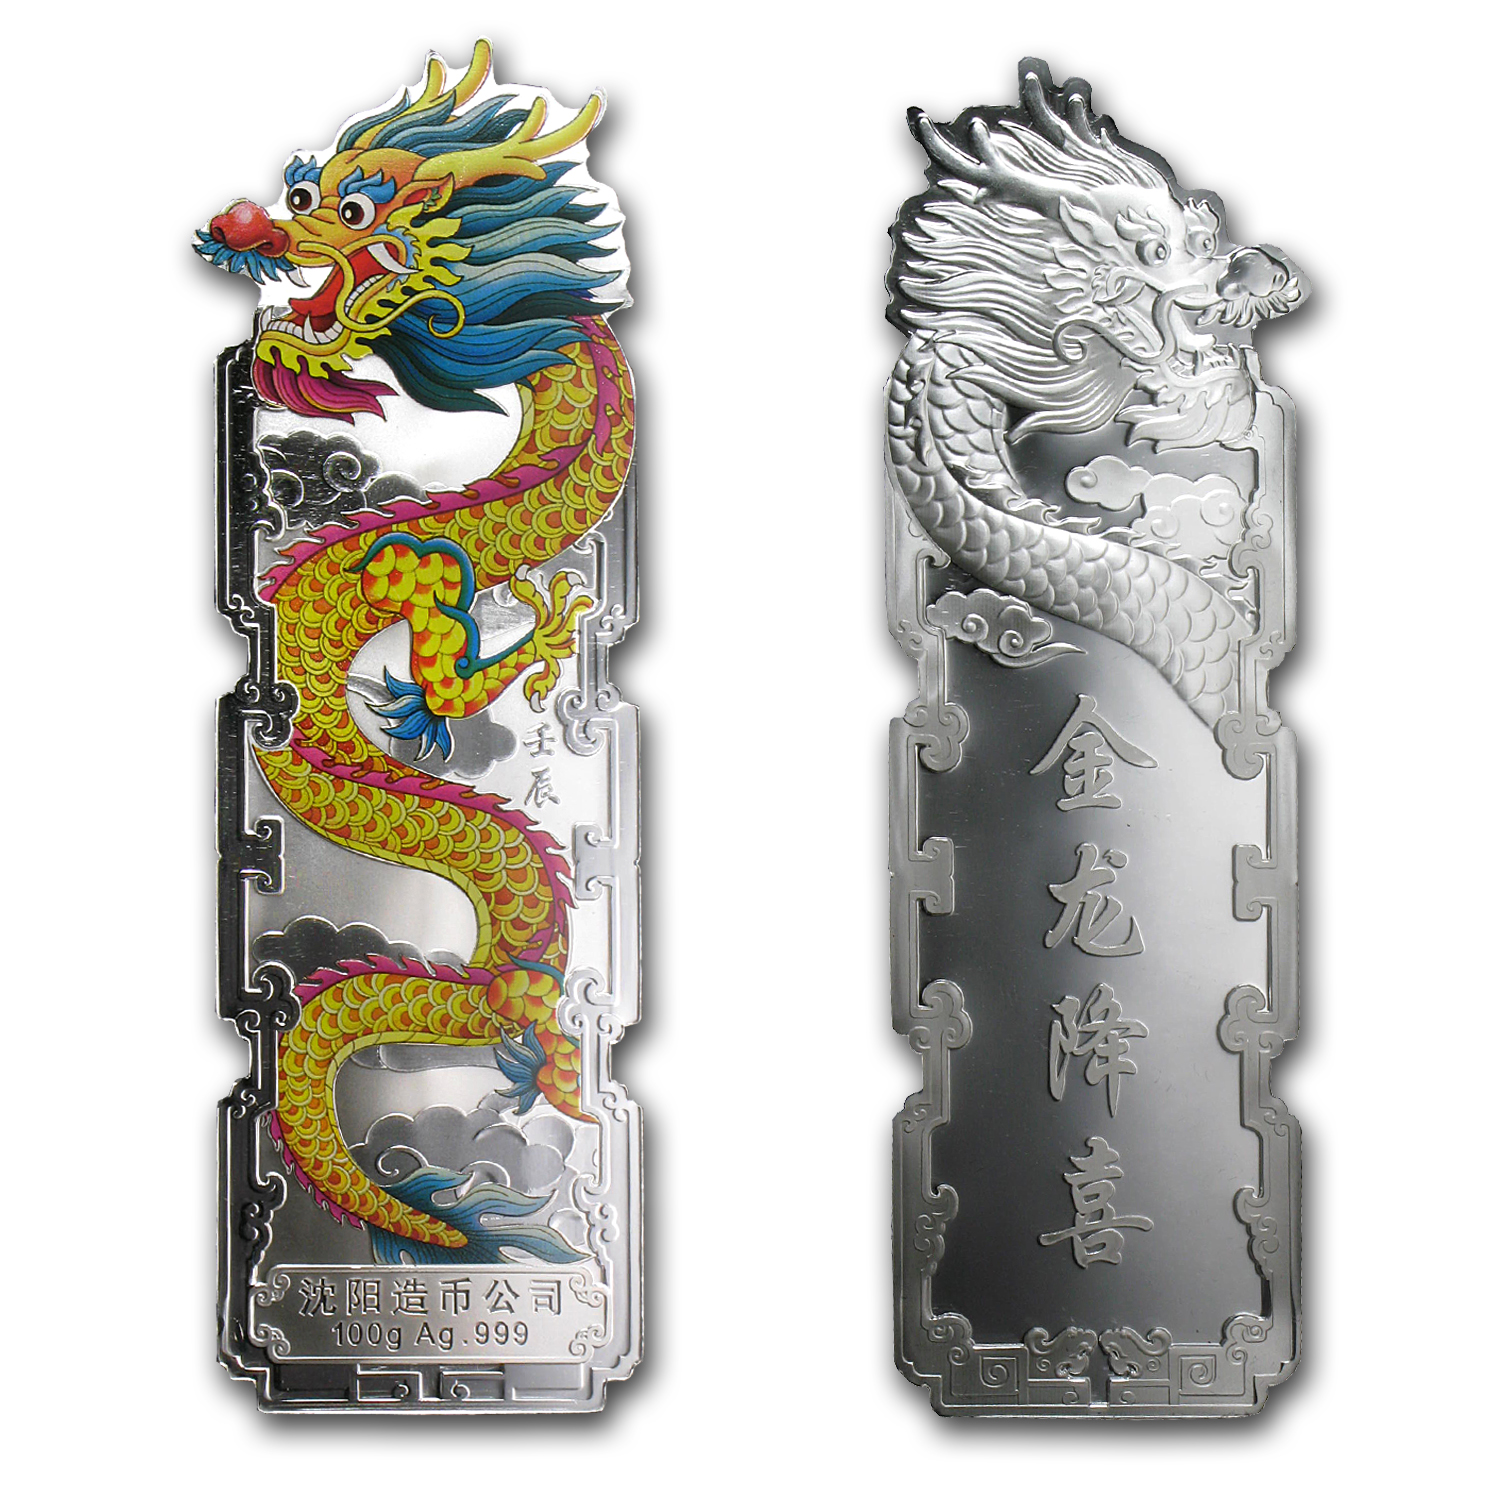 2012 China 100 gram Silver Year of the Dragon Bar (Colorized)